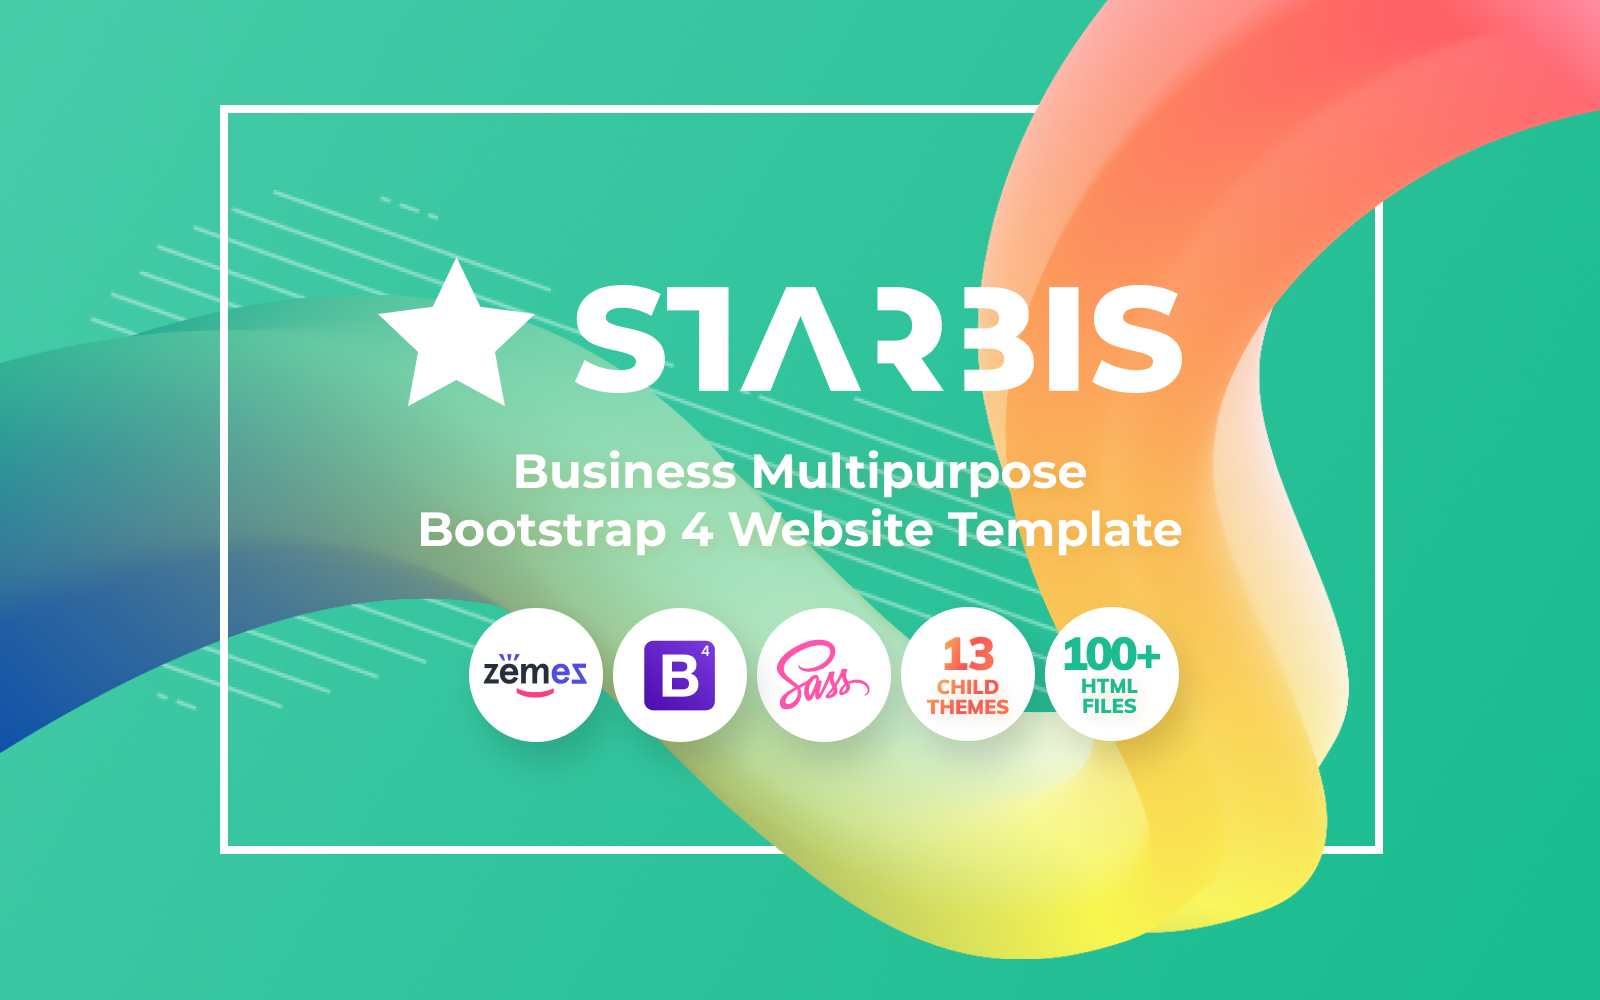 Starbis - Zakelijke multifunctionele Bootstrap 4-websitesjabloon